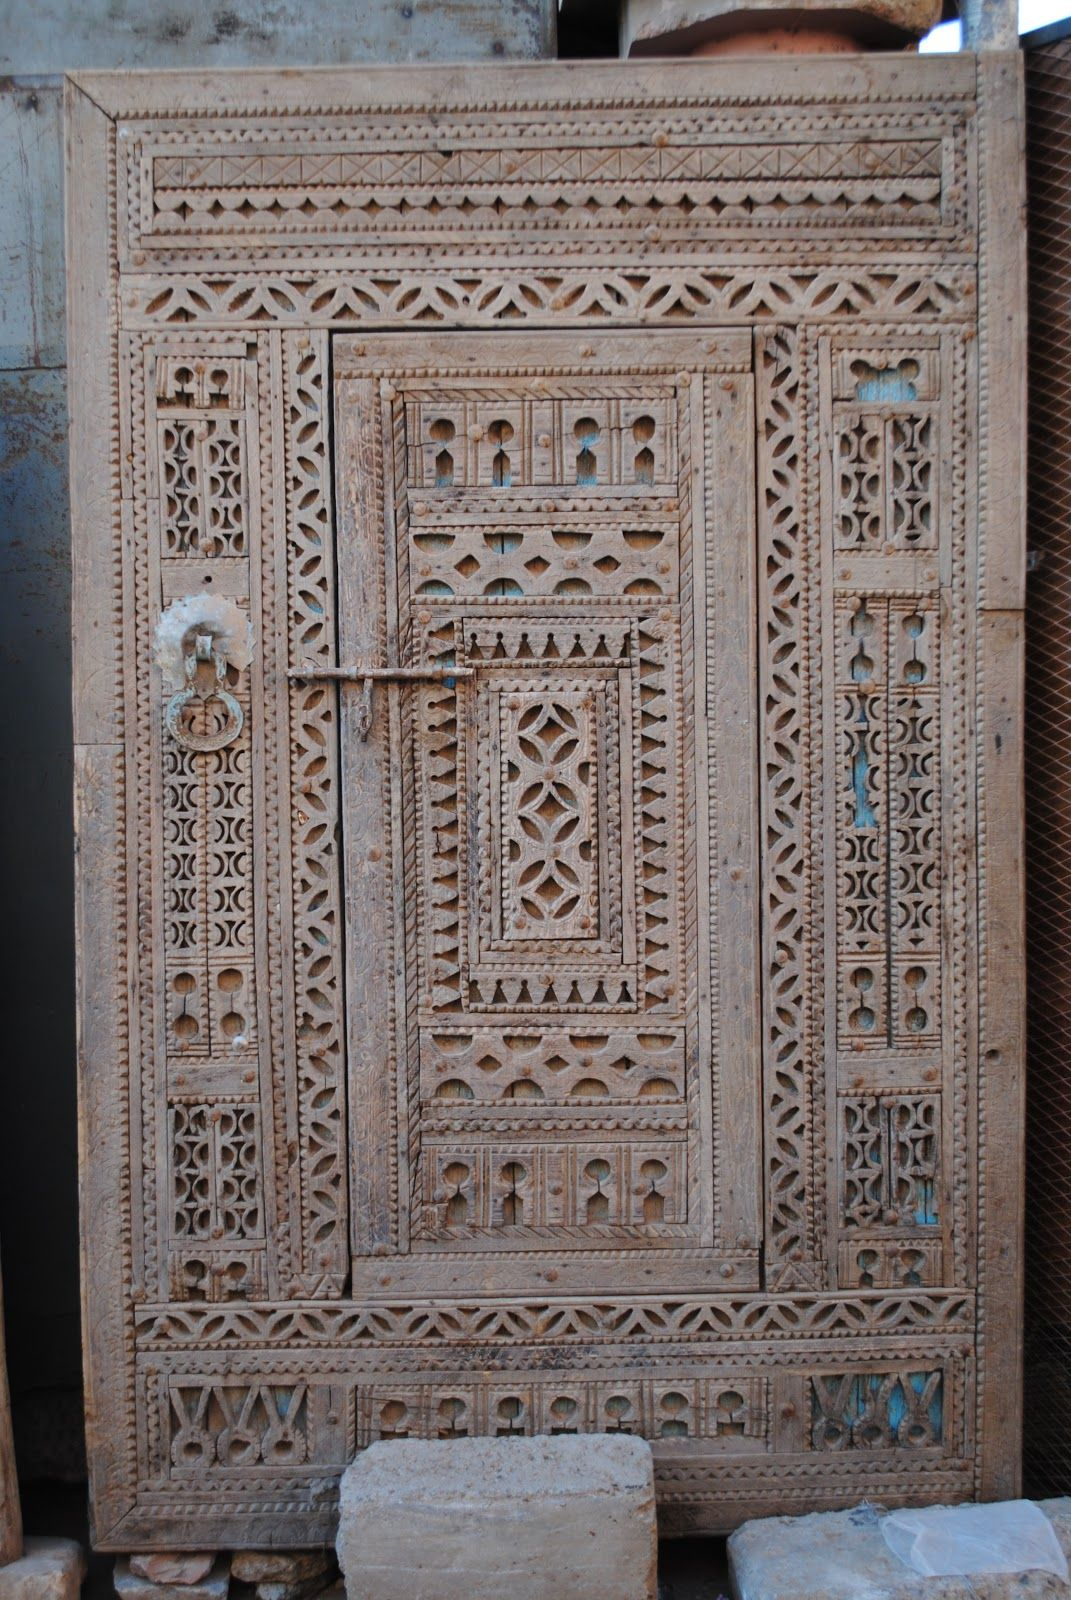 Buying antique Moroccan doors at the Marrakech flea market - Bab el Khemis  | Find, buy and renovate a Riad in Marrakech - the builders guide - Buying Antique Moroccan Doors At The Marrakech Flea Market - Bab El